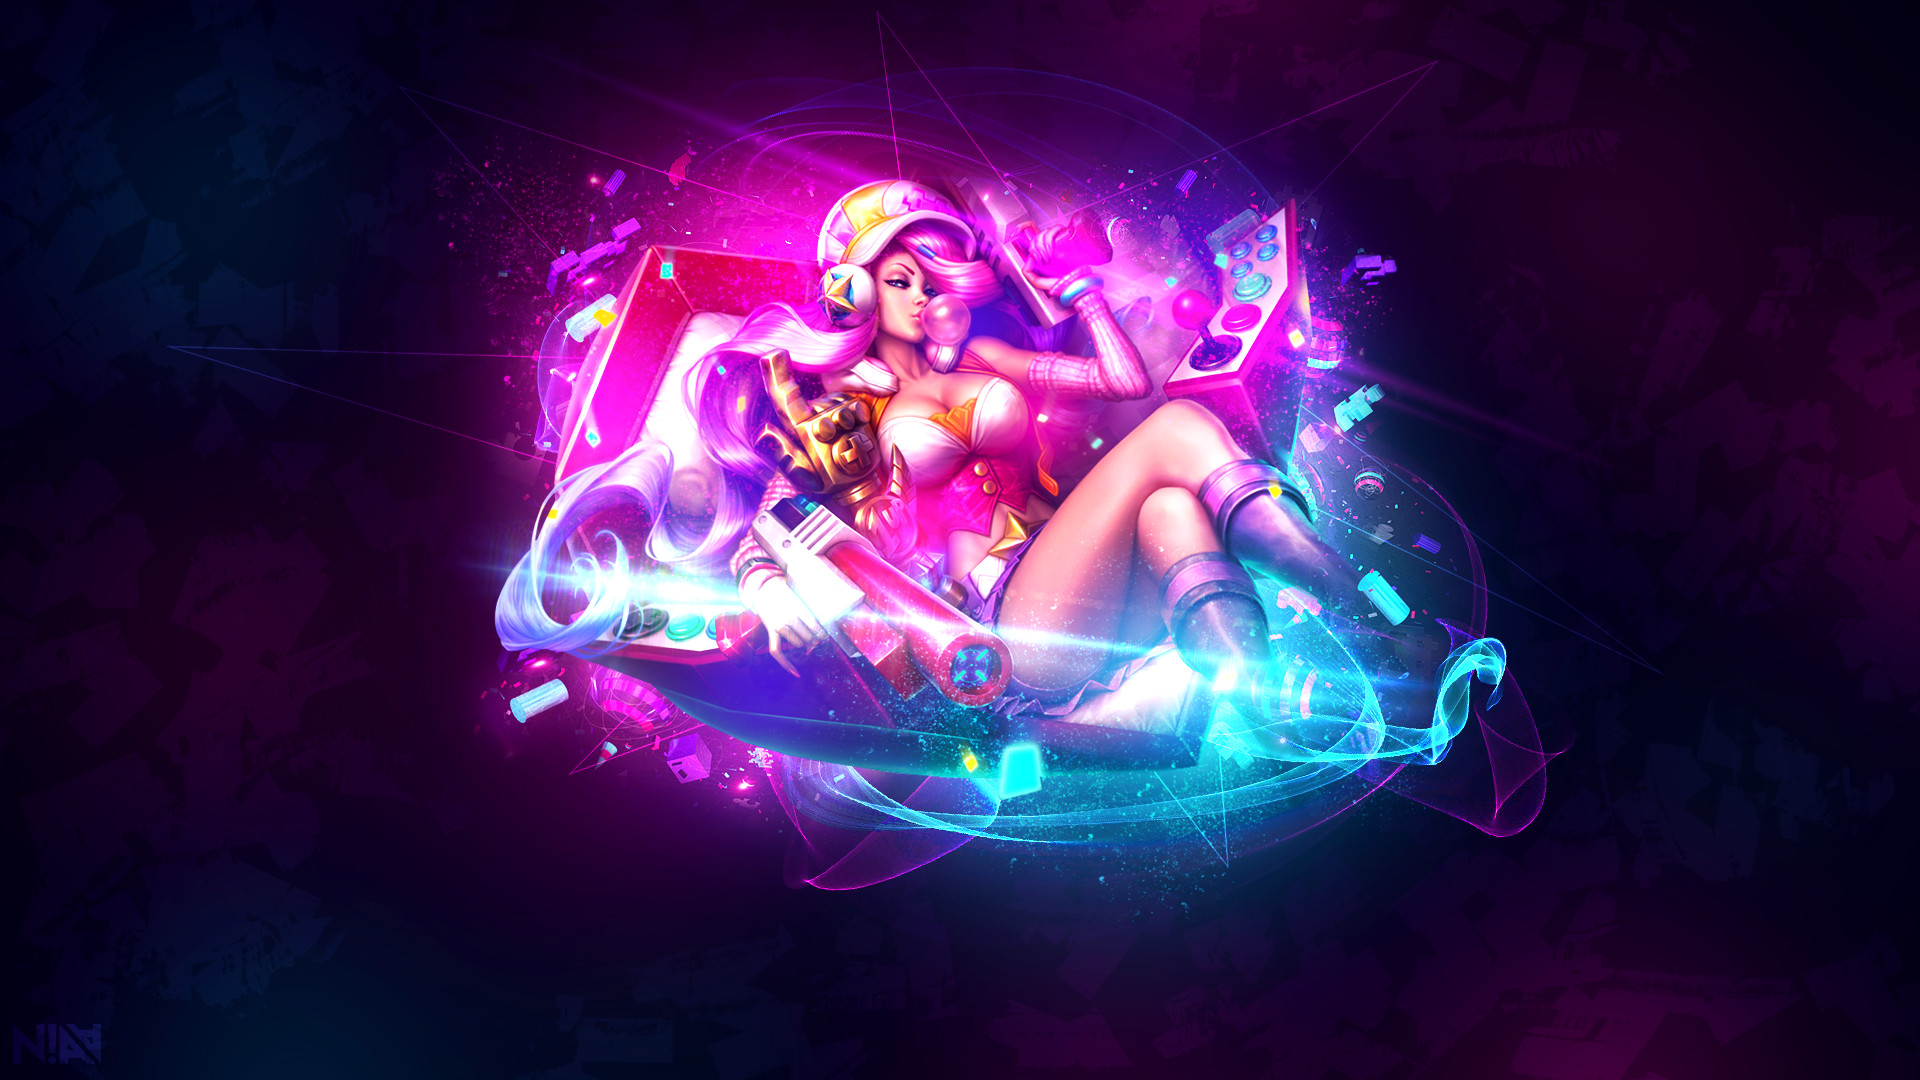 1920x1080 ... Arcade Miss Fortune - Wallpaper by AliceeMad